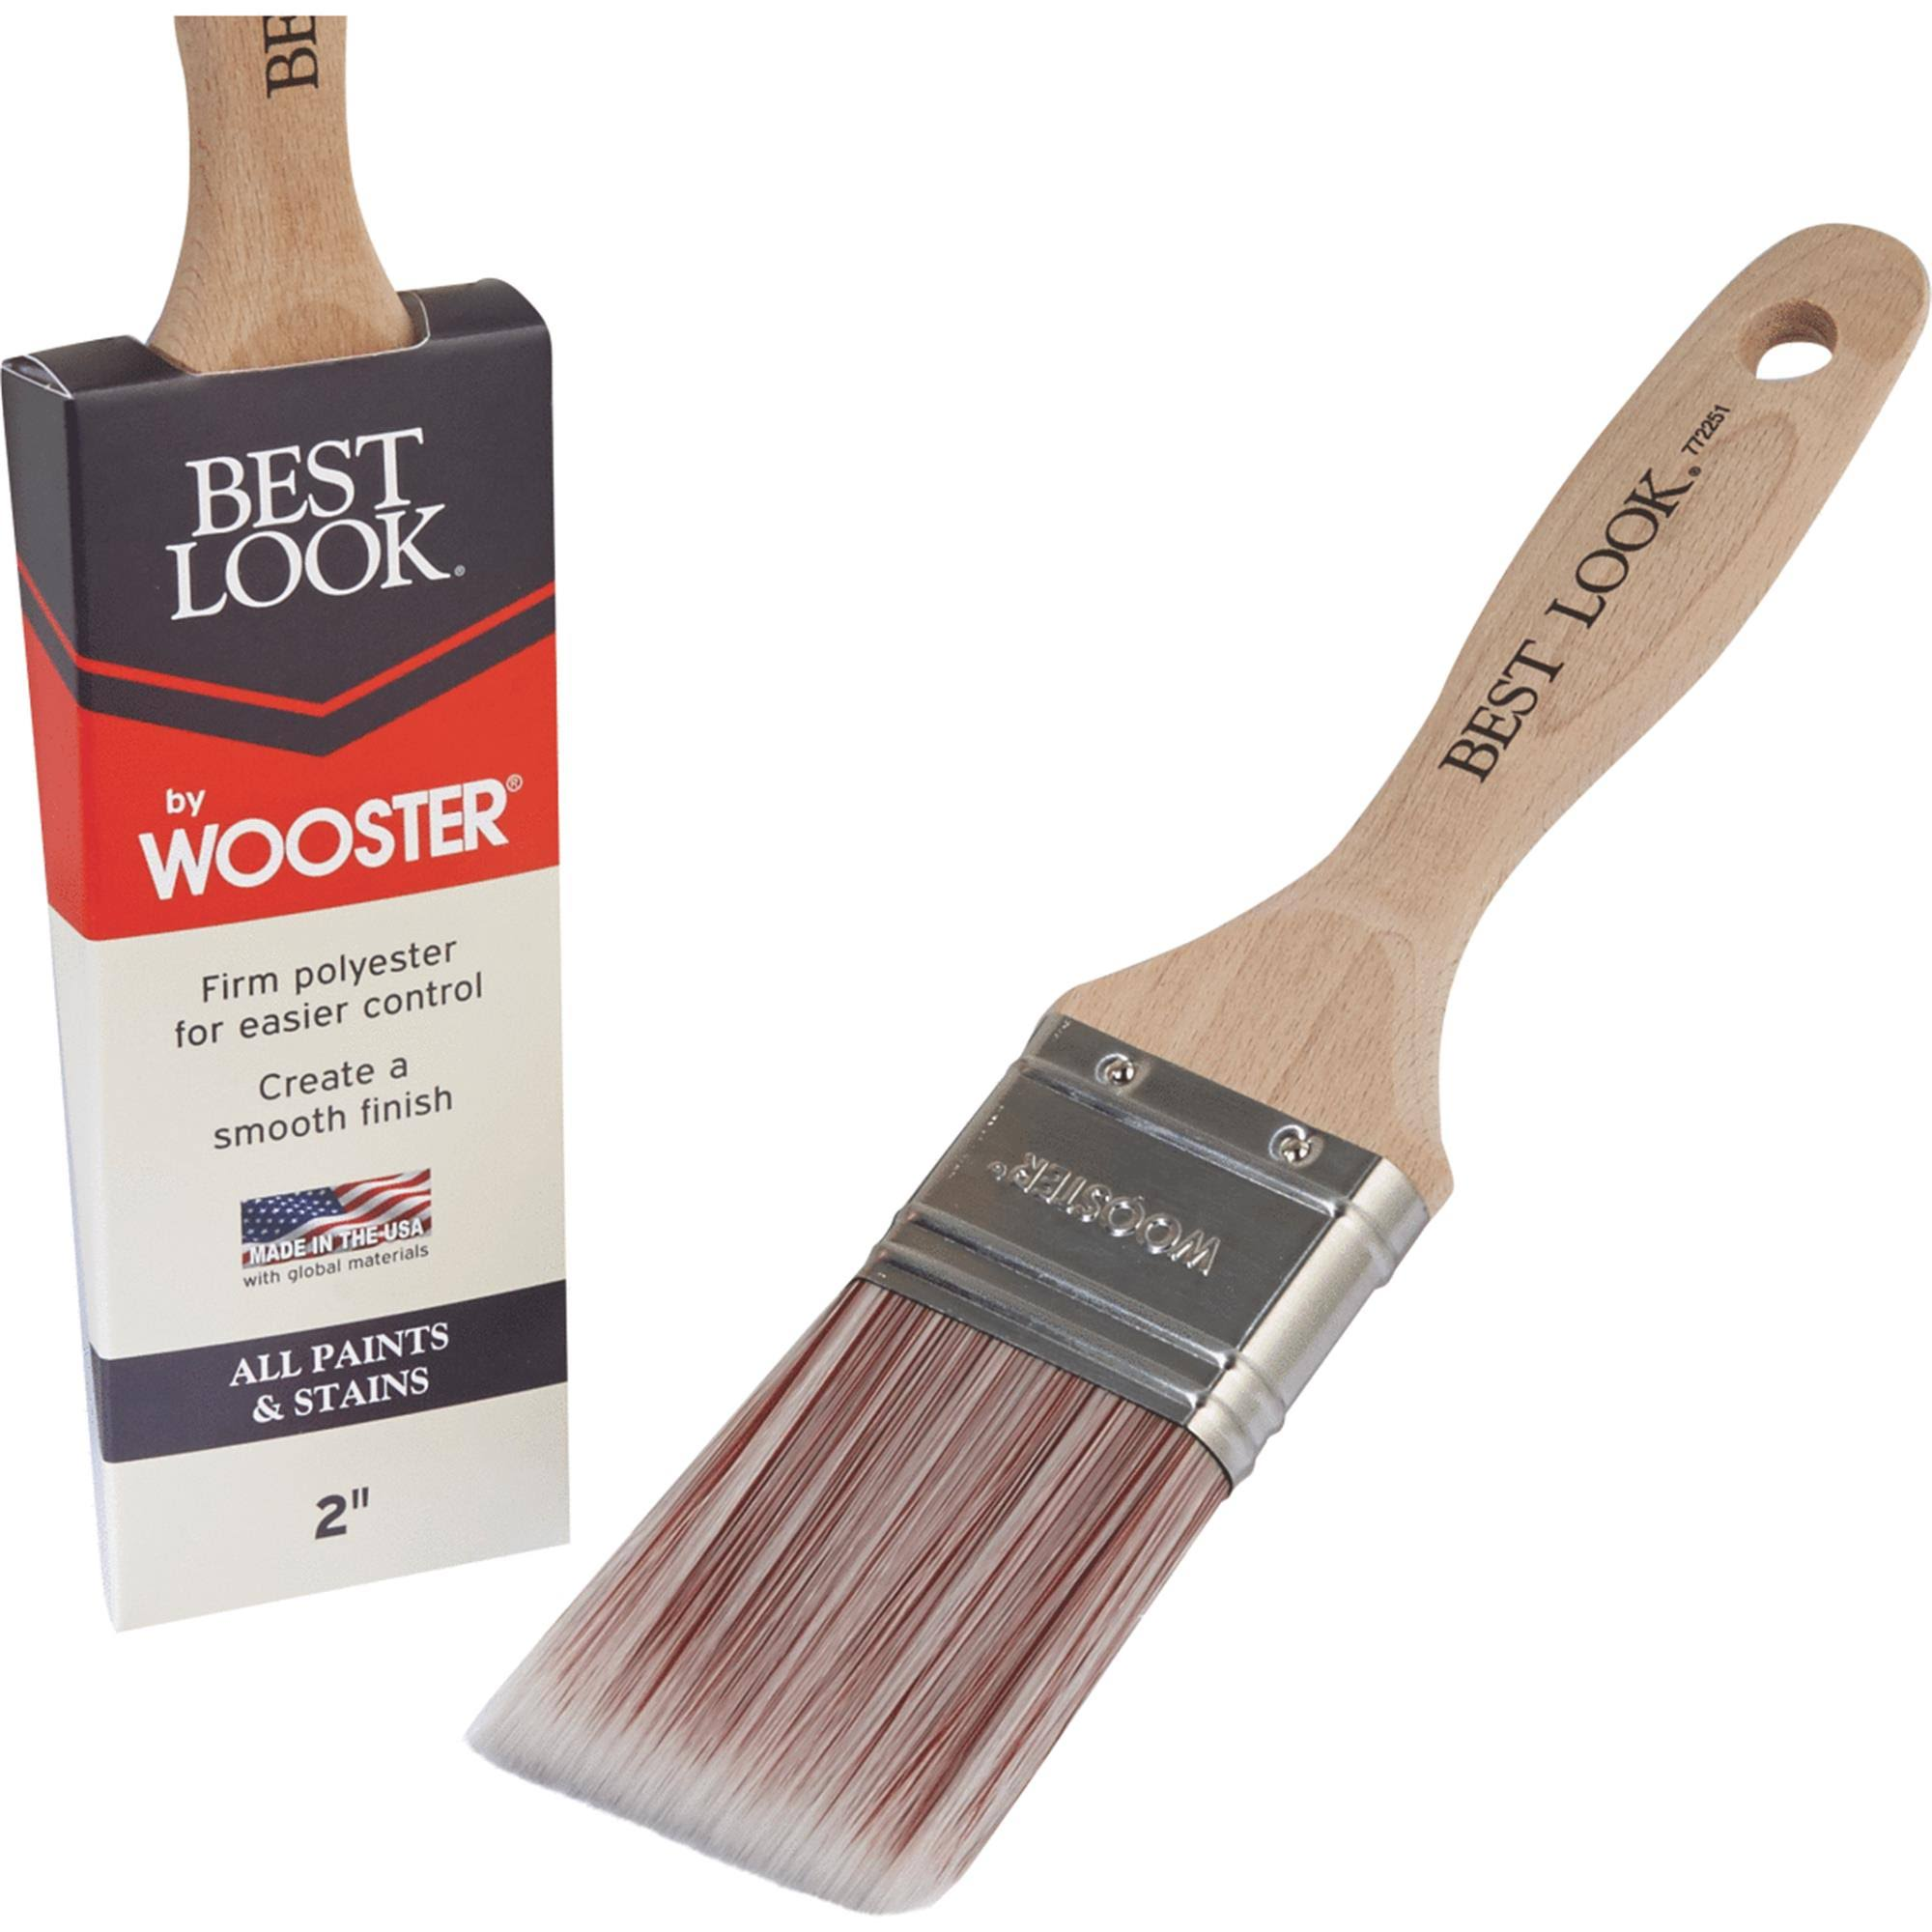 Best Look by Wooster Polyester Paint Brush - D4024-2